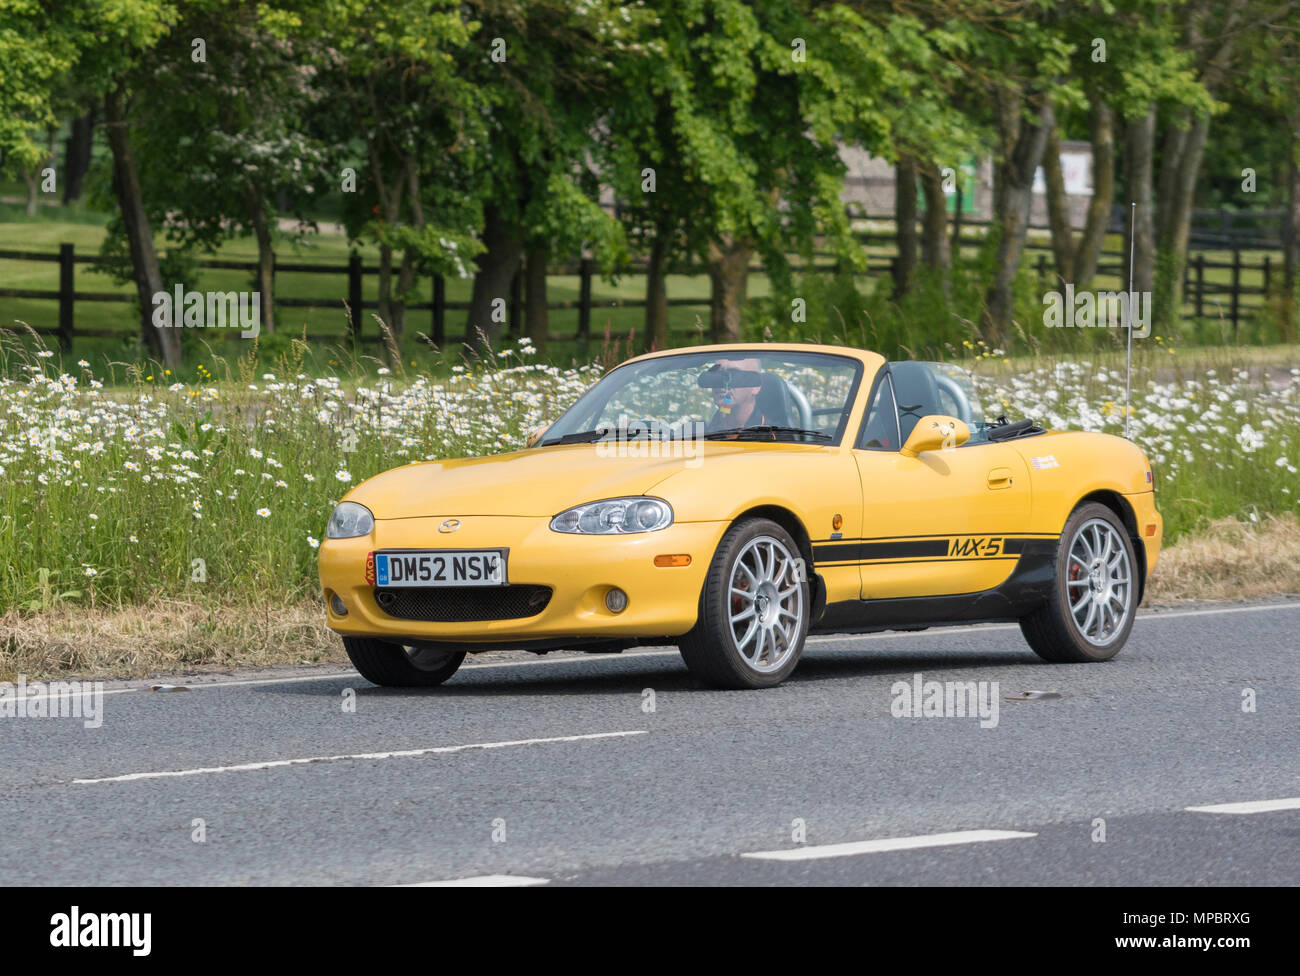 Yellow Mazda MX-5 Arizona convertible sports car from 2002, with the top down on a British road on a hot day in the UK. Mazda soft top car. - Stock Image